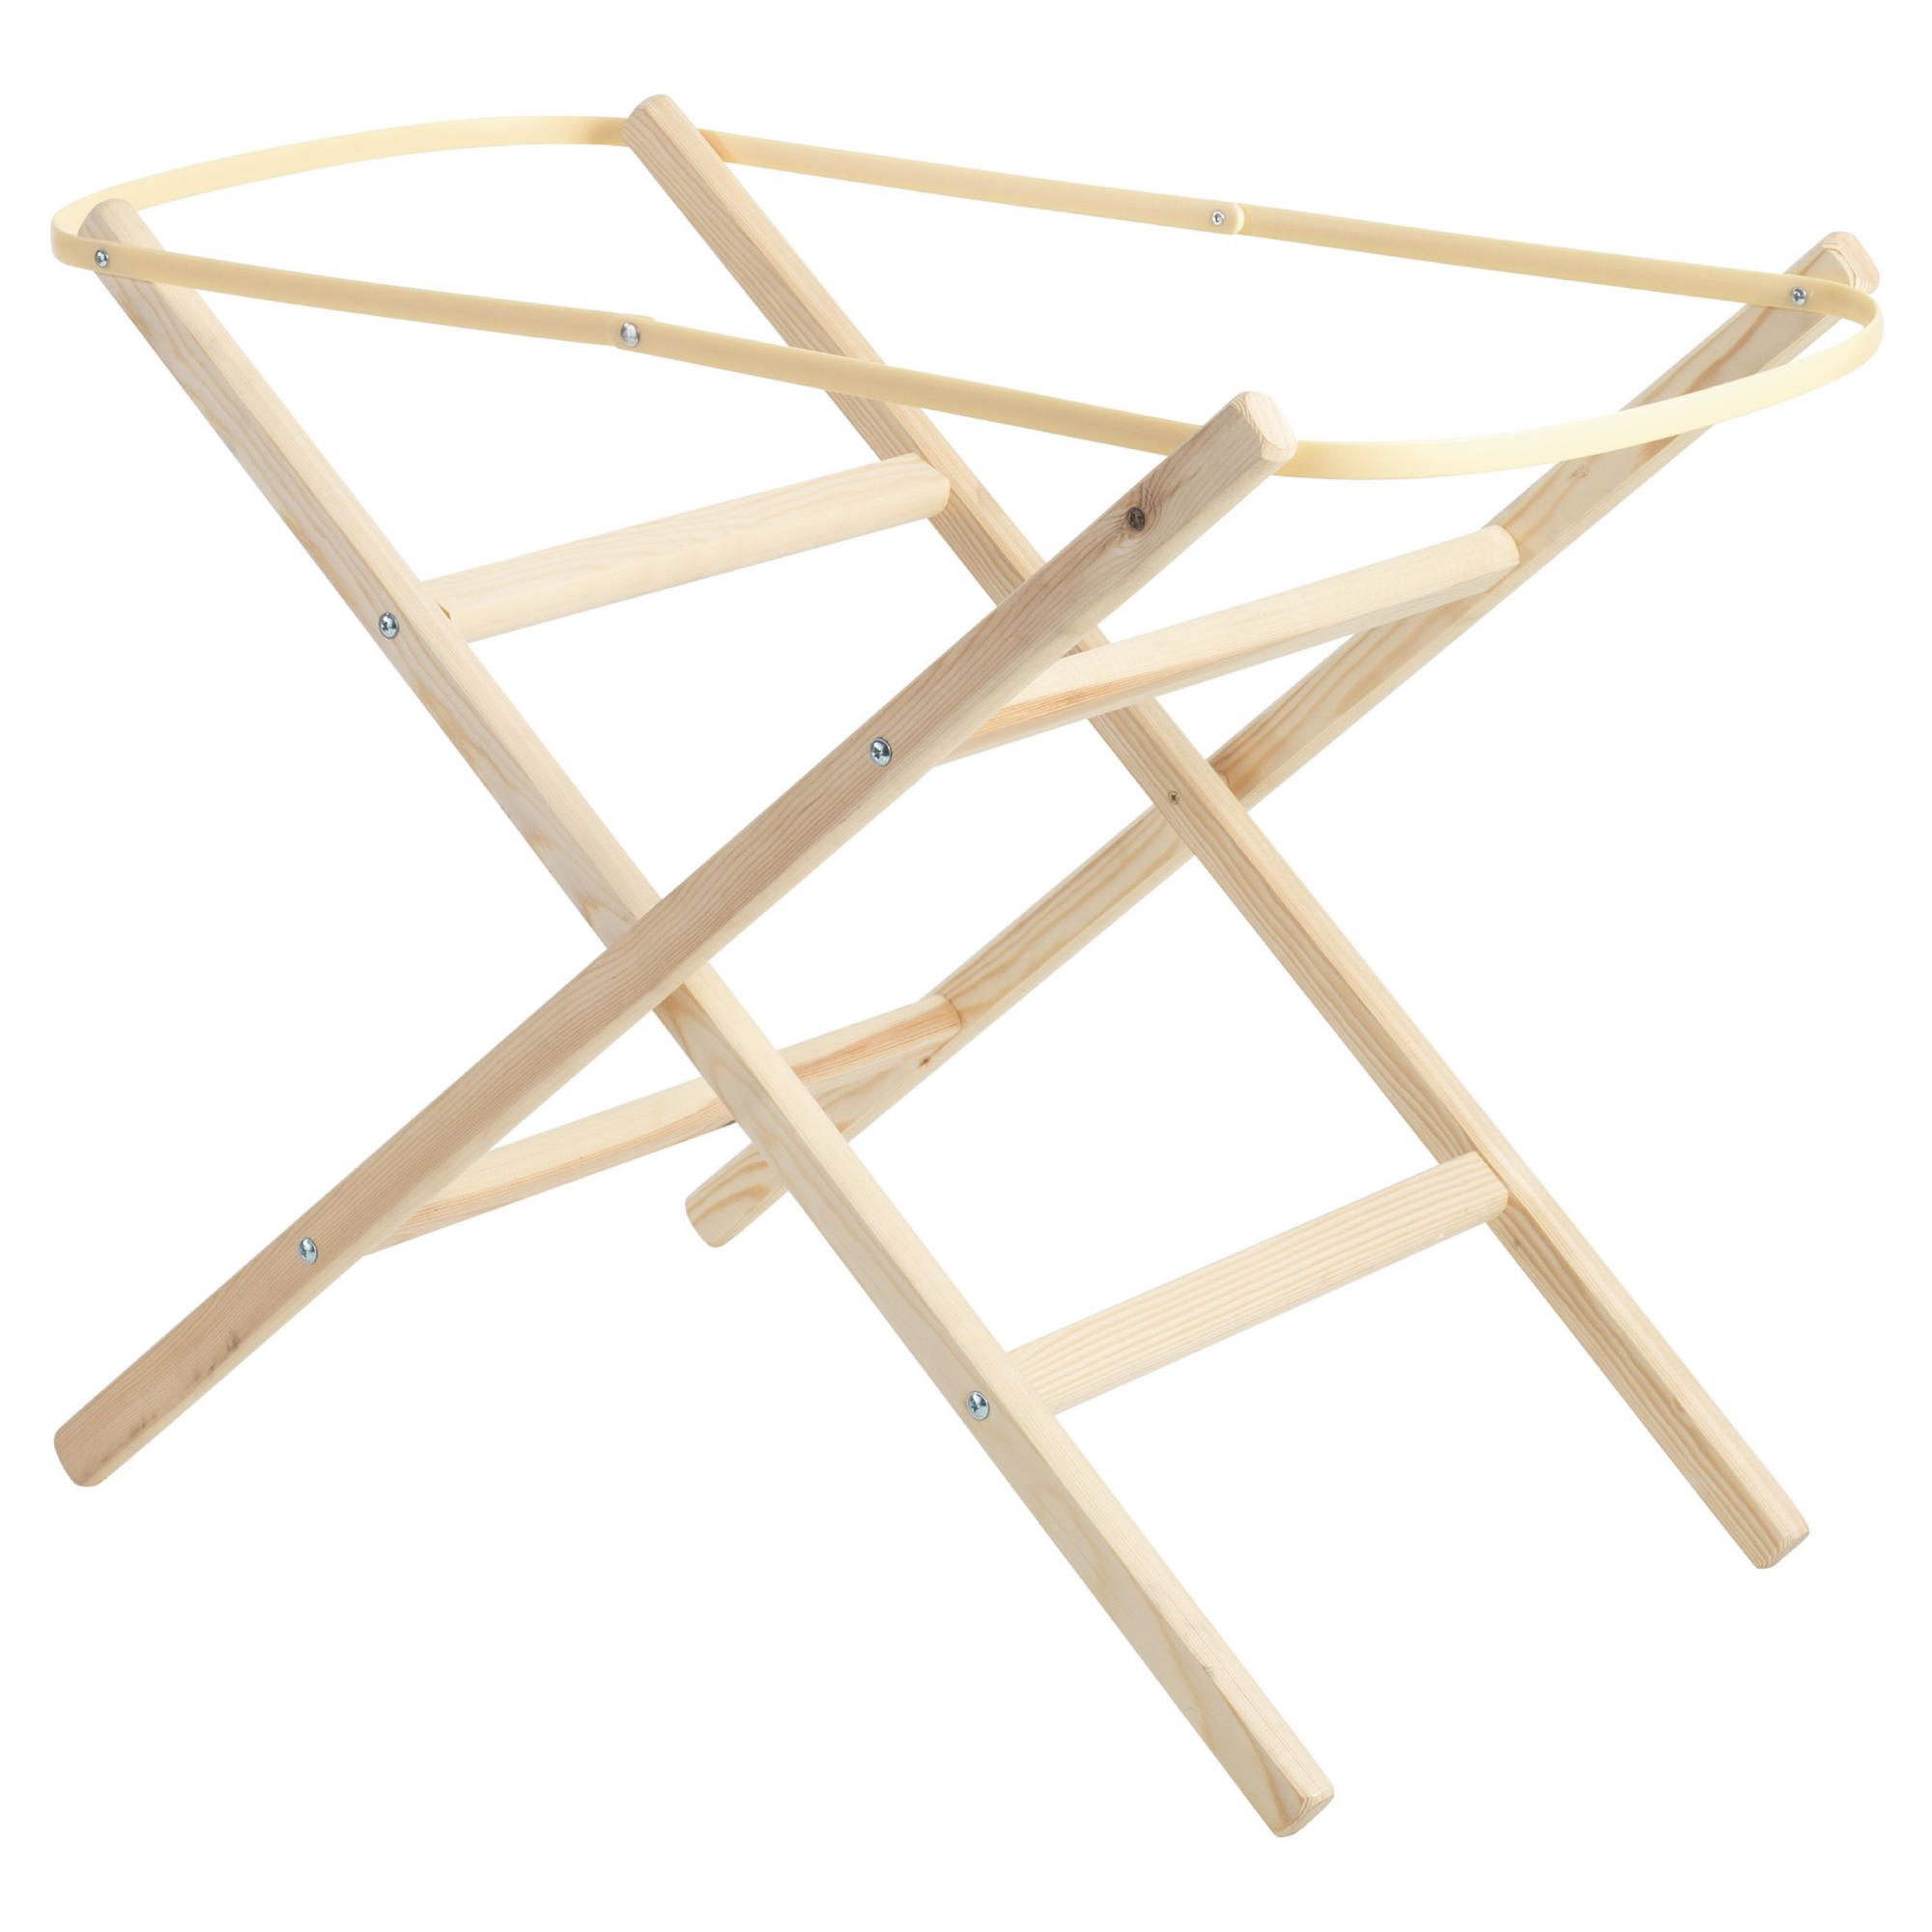 Clair de lune Wooden Folding Moses Basket Stand